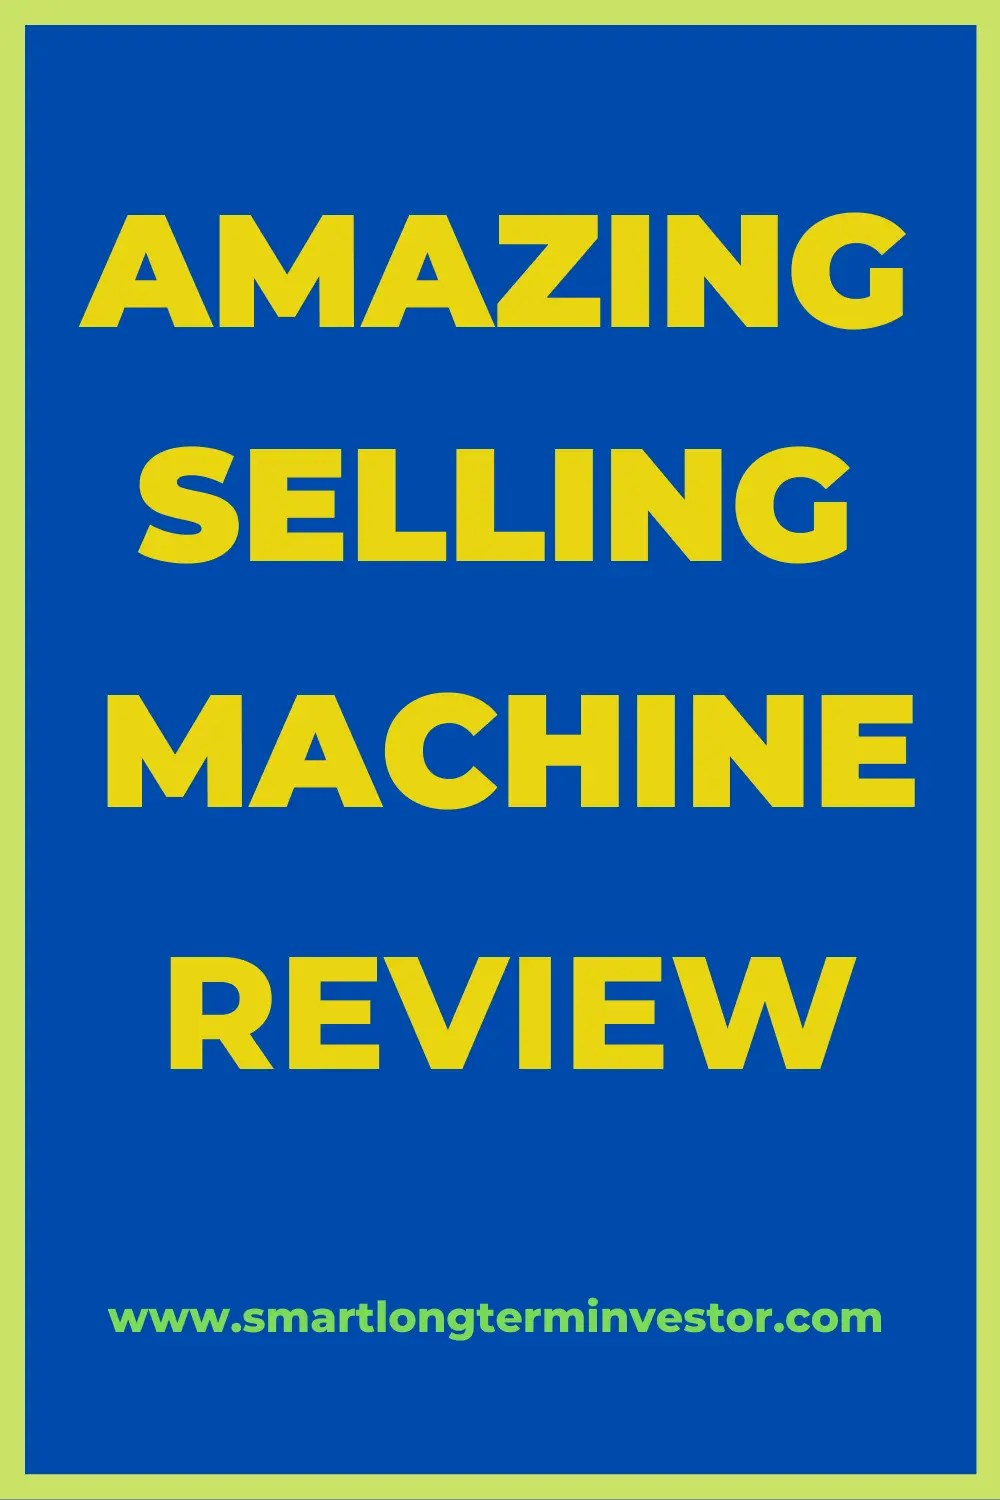 Amazing Selling Machine (ASM12) 2020 Review: Still The Best Amazon FBA Course?